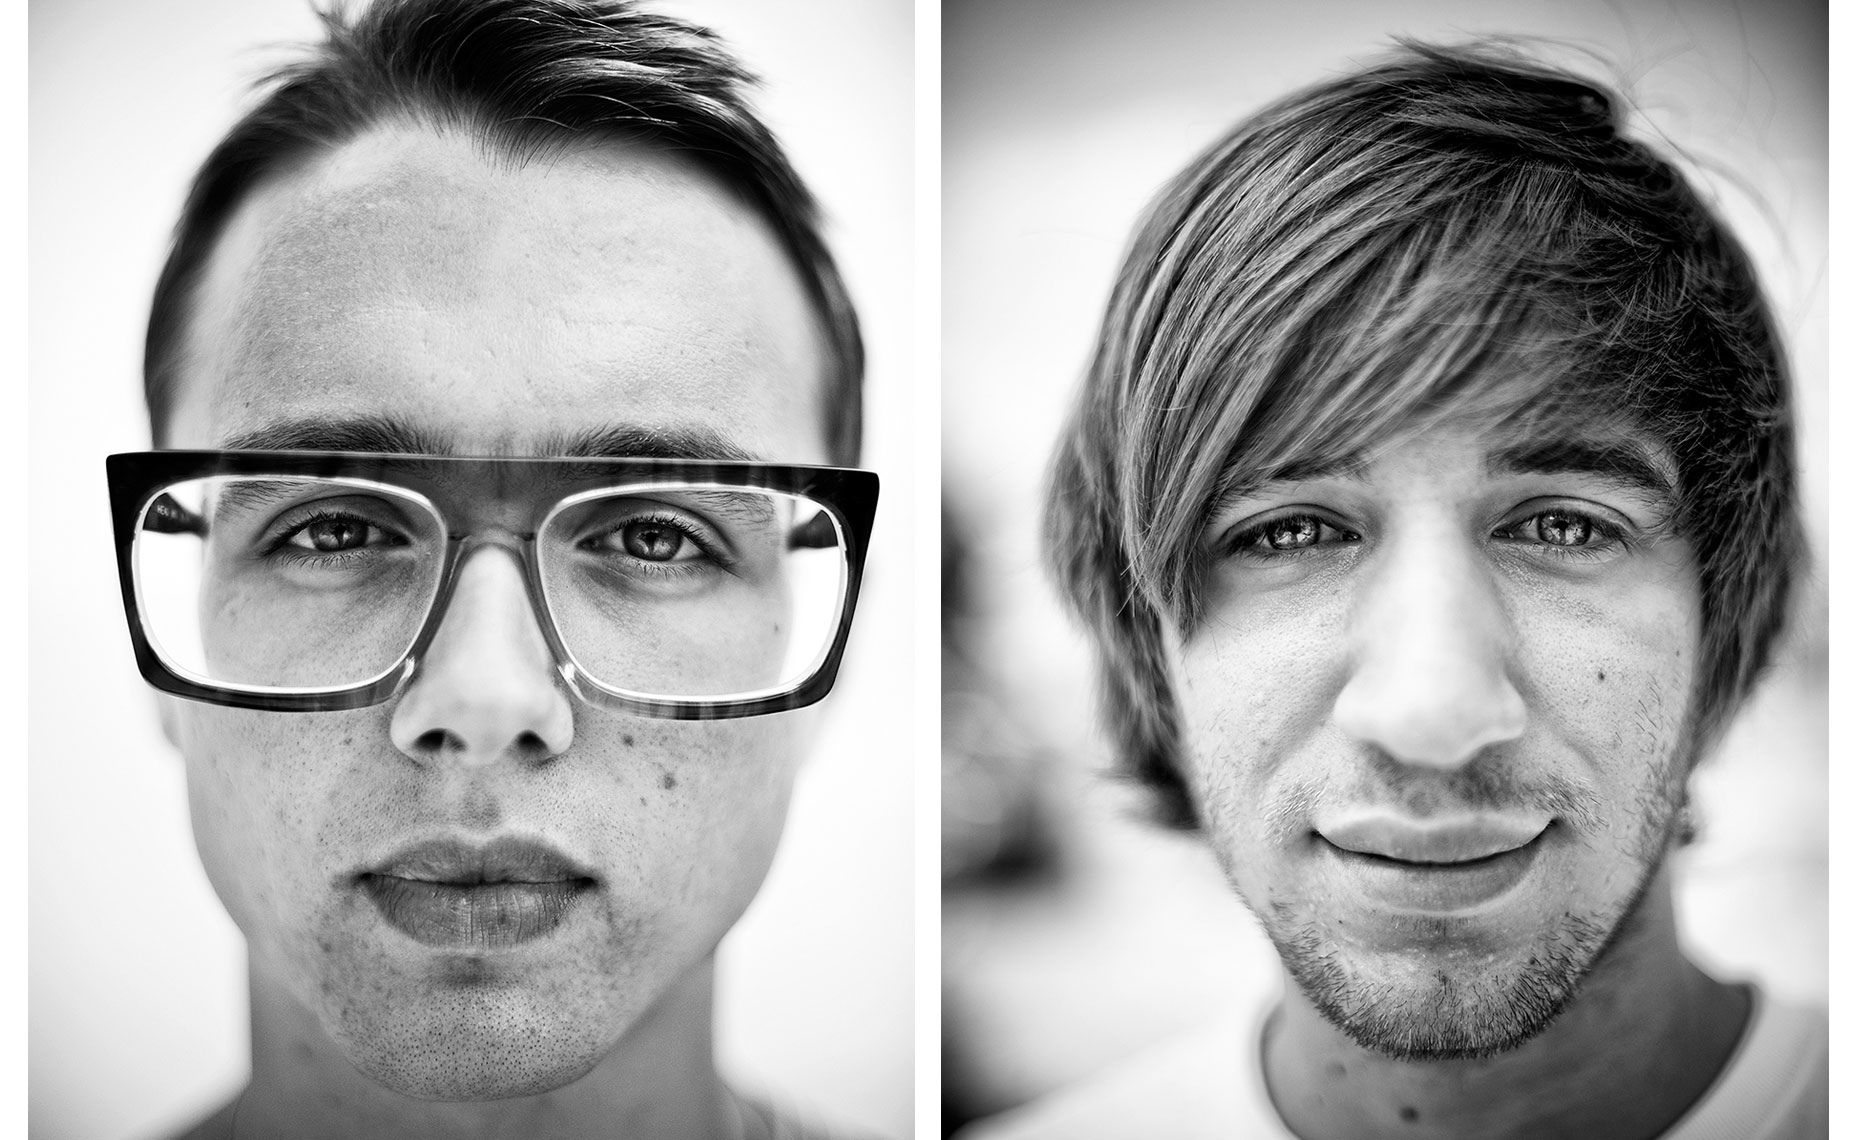 aaron-ingrao-diptych-portrait-ironic-glasses